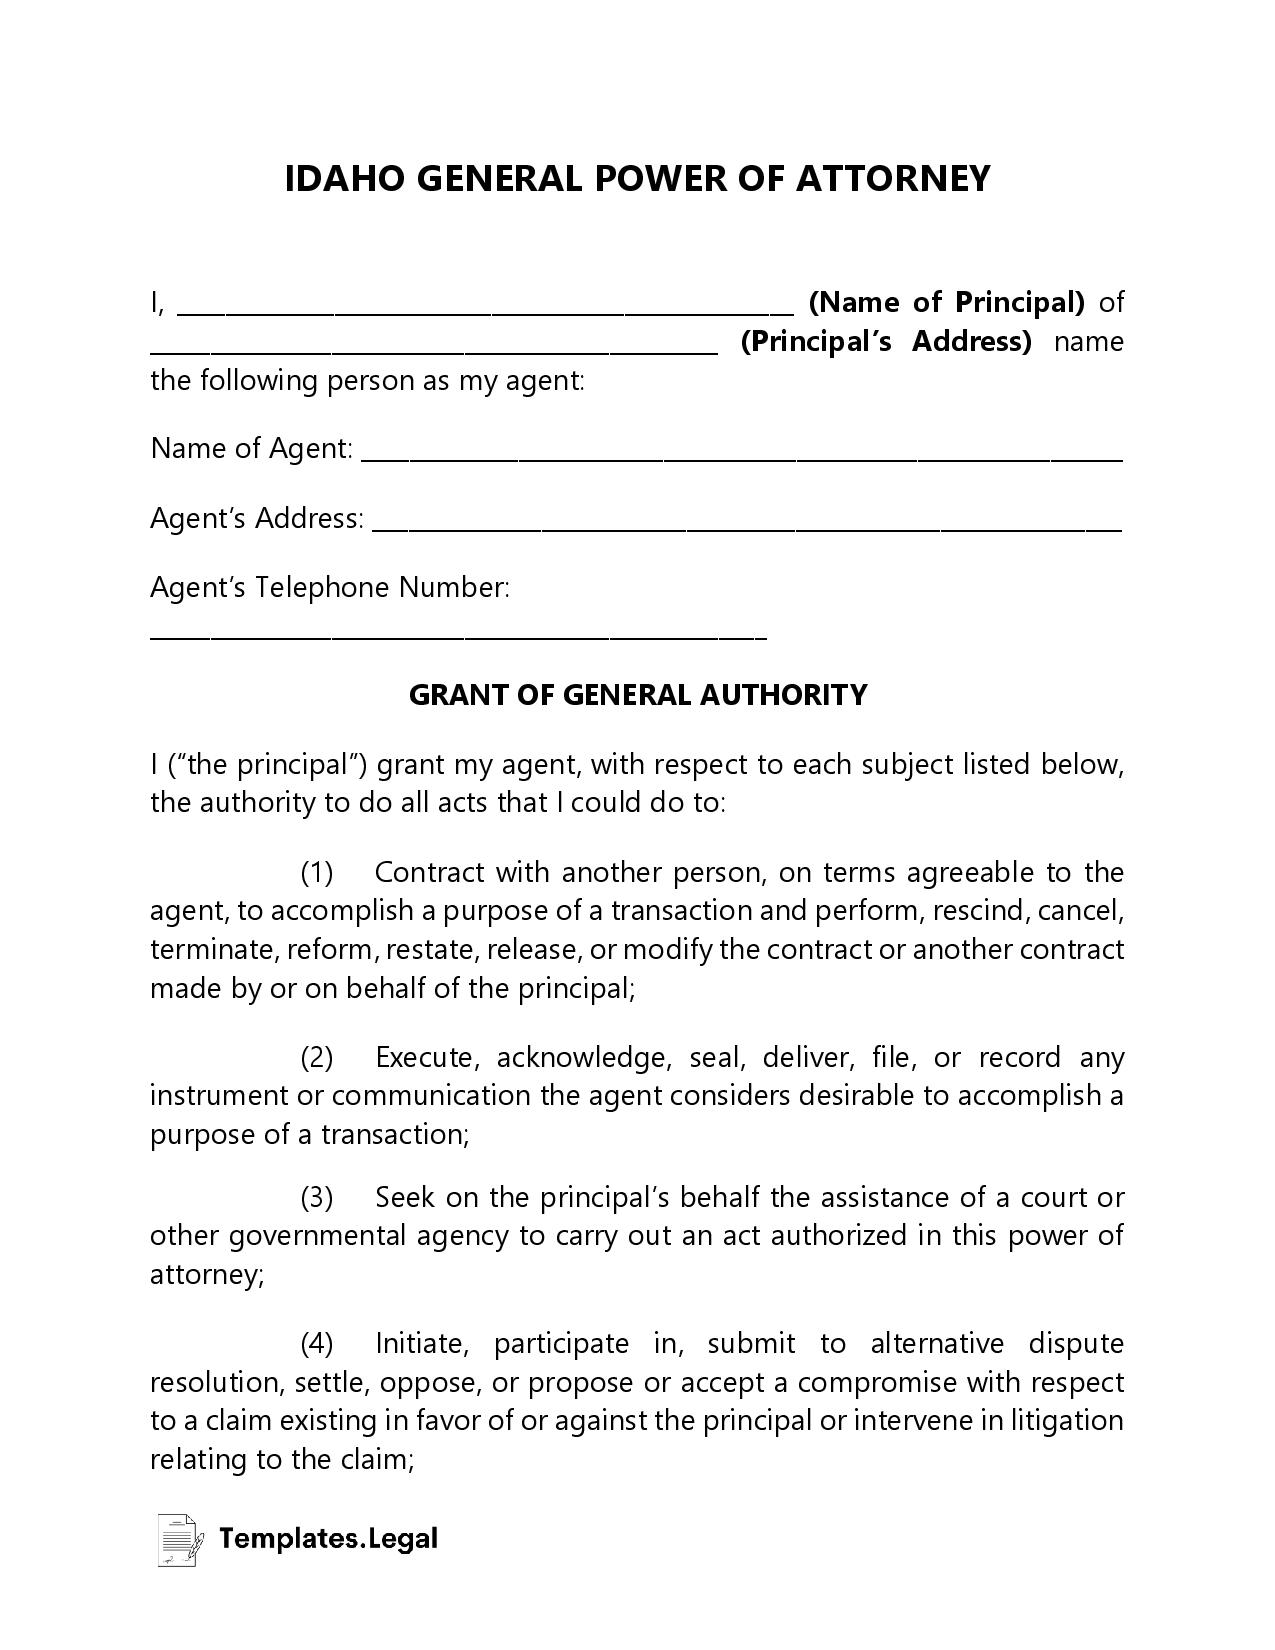 Idaho General Power of Attorney - Templates.Legal